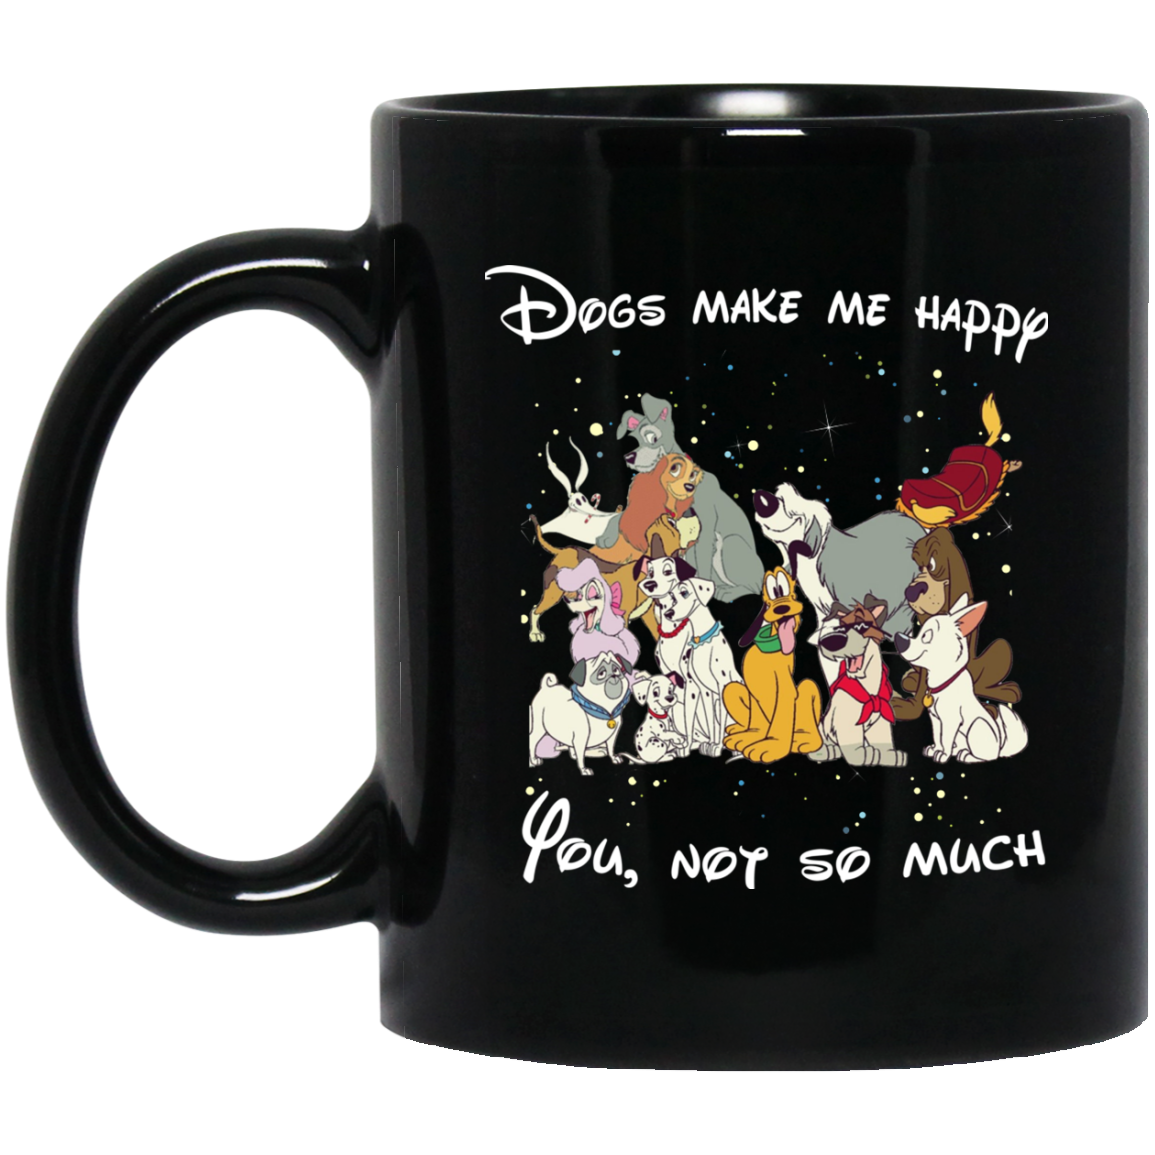 imagepx Disney Dogs make me happy you not somuch coffee mug